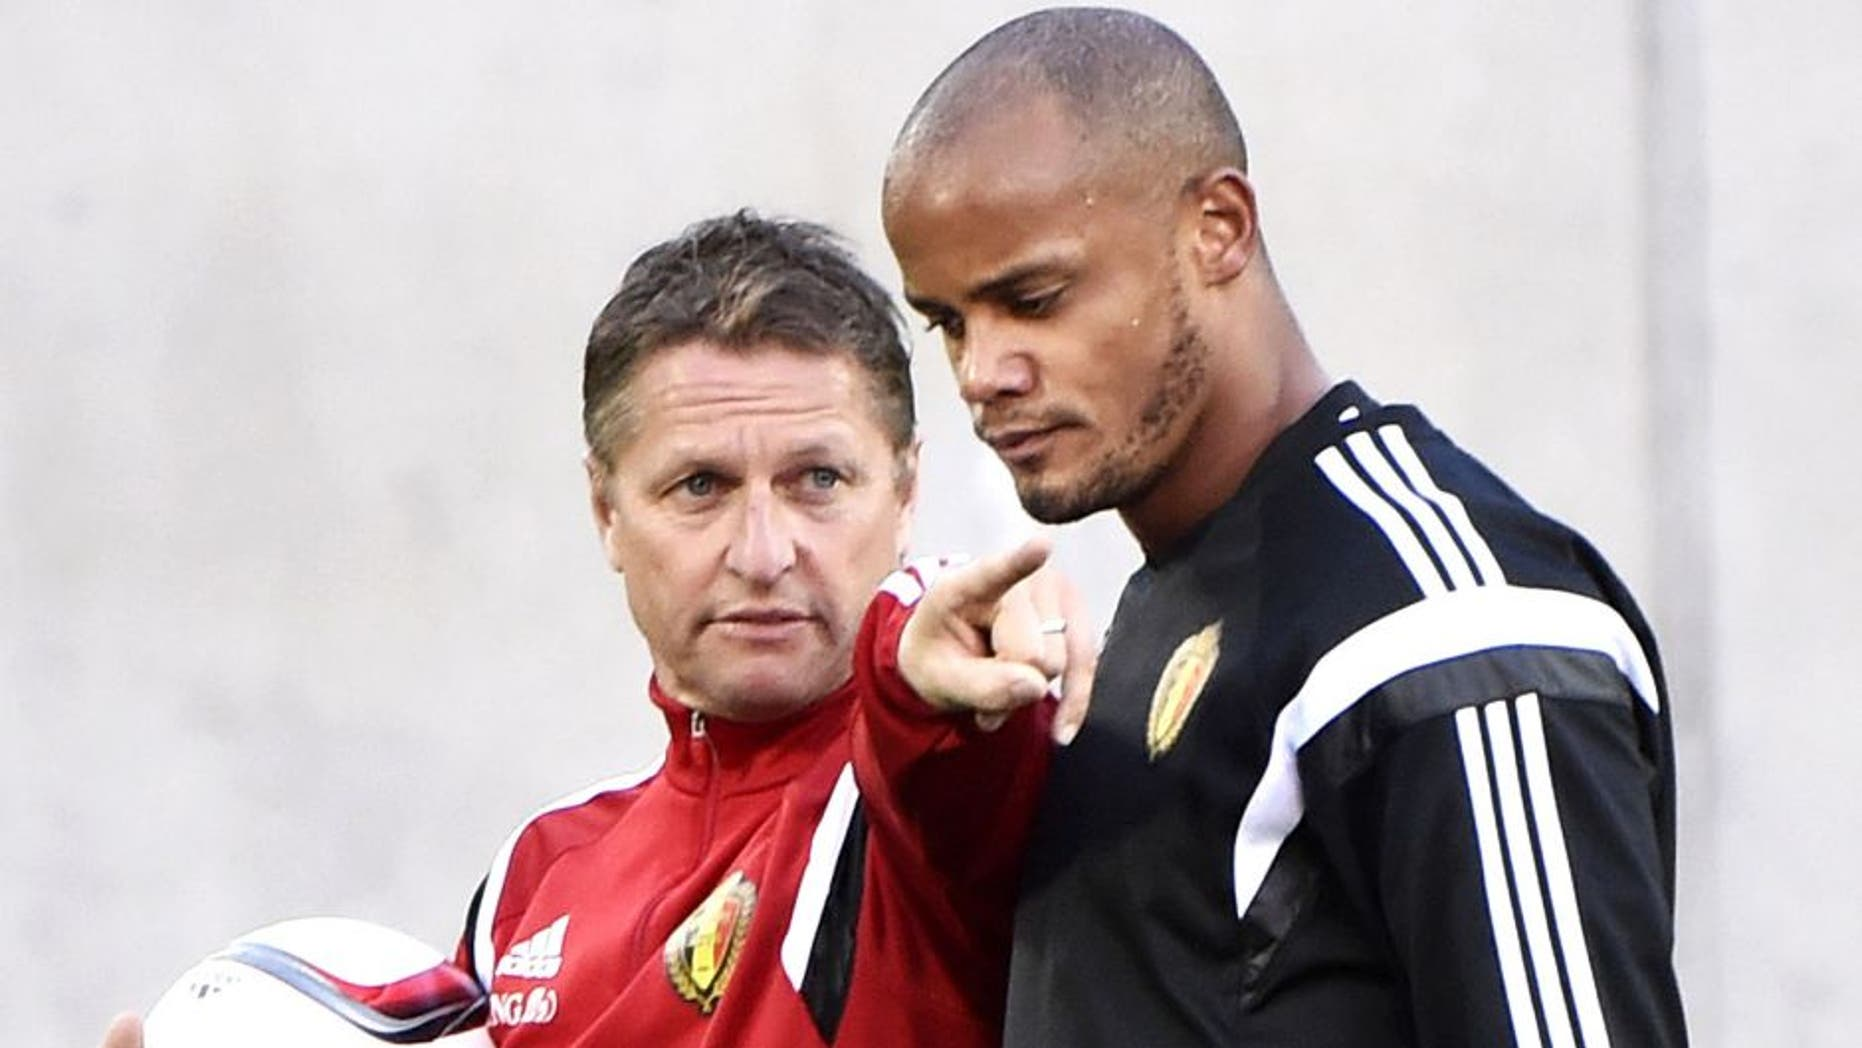 Belgium's Coach Marc Wilmots (L) and defender Vincent Kompany attend a training session at the Estadi Comunal in Andorra la Vella on October 10, 2015, on the eve of the Euro2016 qualifying group D football match Andorra against Belgium. AFP PHOTO / PASCAL PAVANI (Photo credit should read PASCAL PAVANI/AFP/Getty Images)